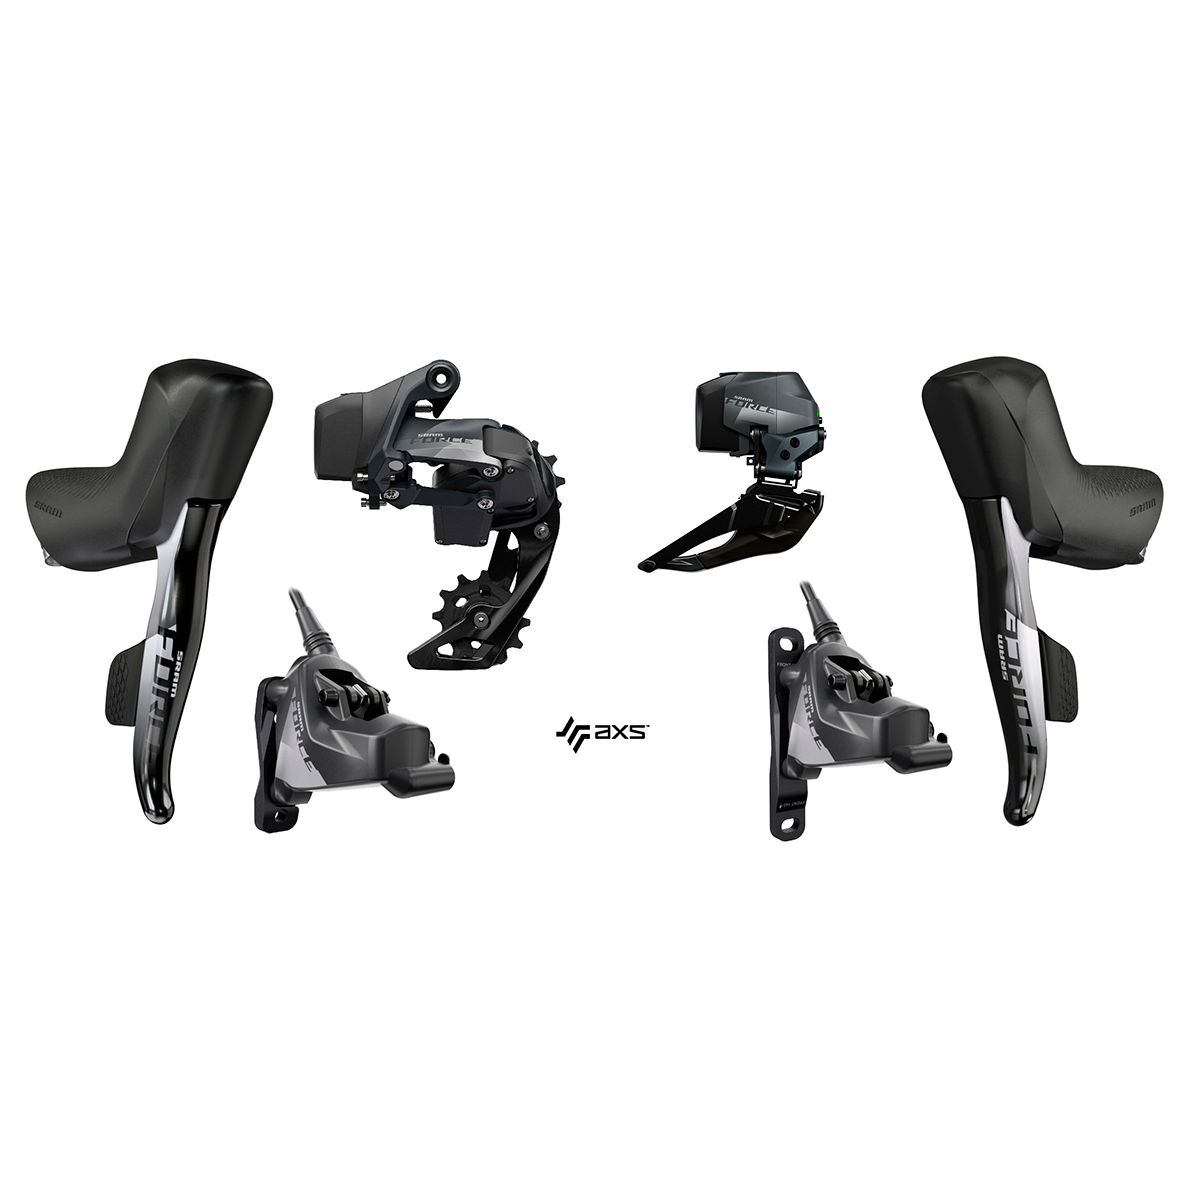 SRAM FORCE® eTap AXS™ HRD Shift-Brake Control 2x12 for Disc Brakes | Computer Battery and Charger